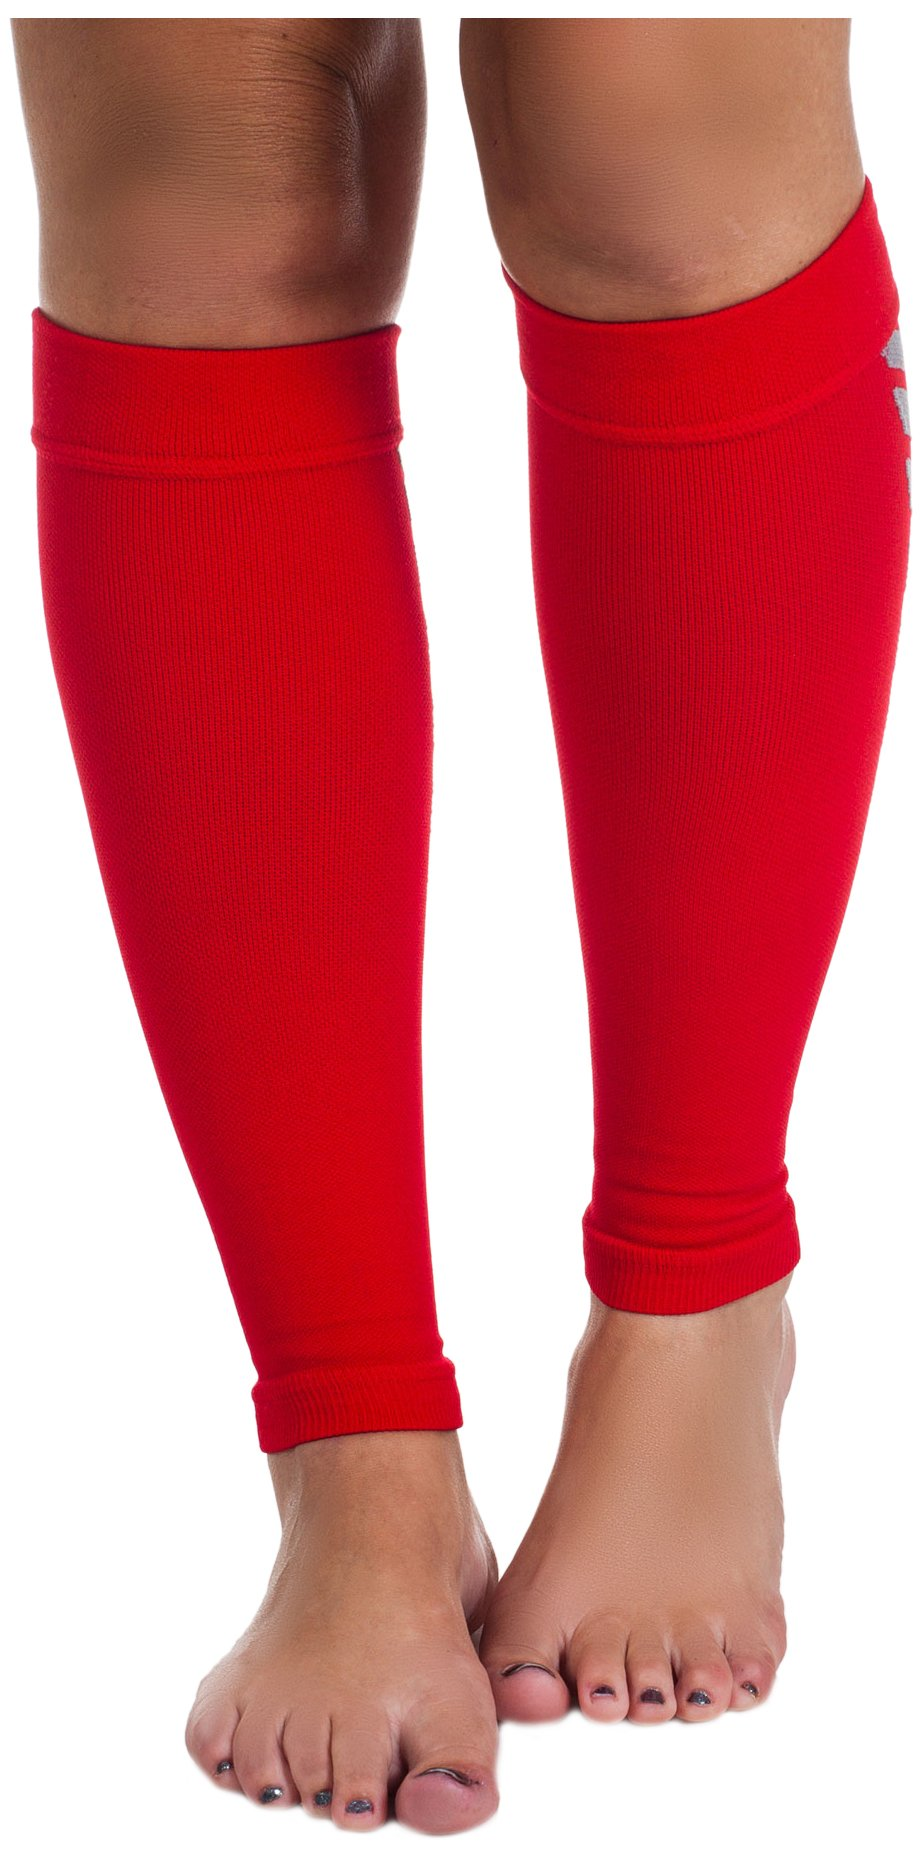 Remedy Calf Compression Sleeve Socks, Red, Large